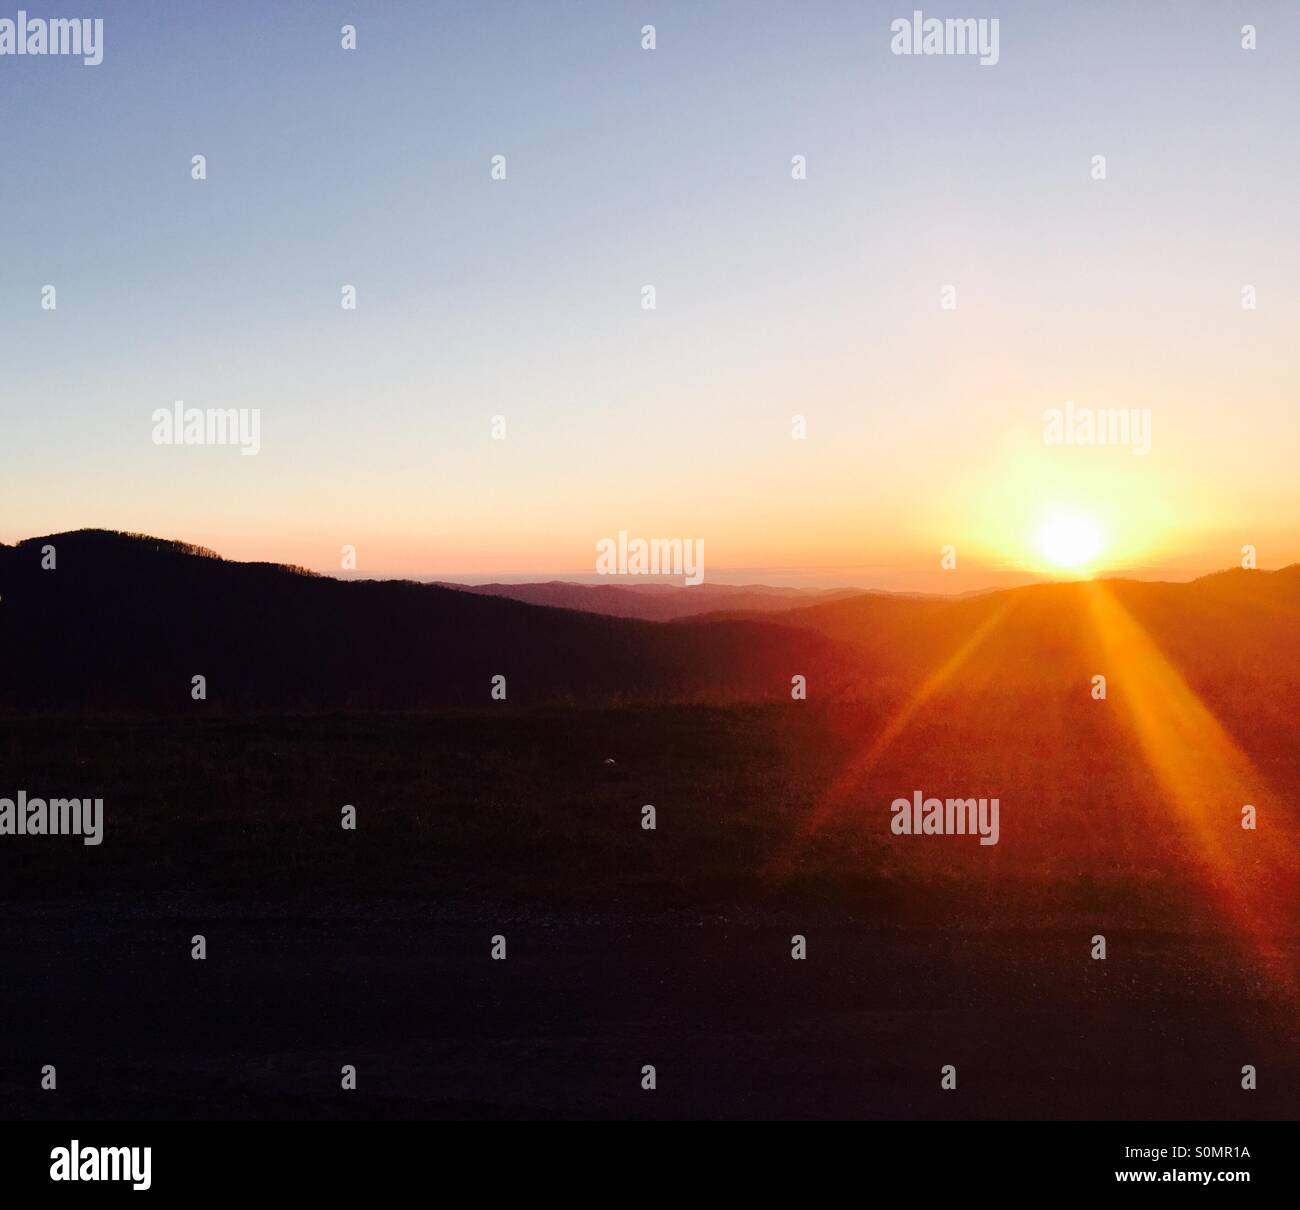 Sunsetting on the mountains - Stock Image